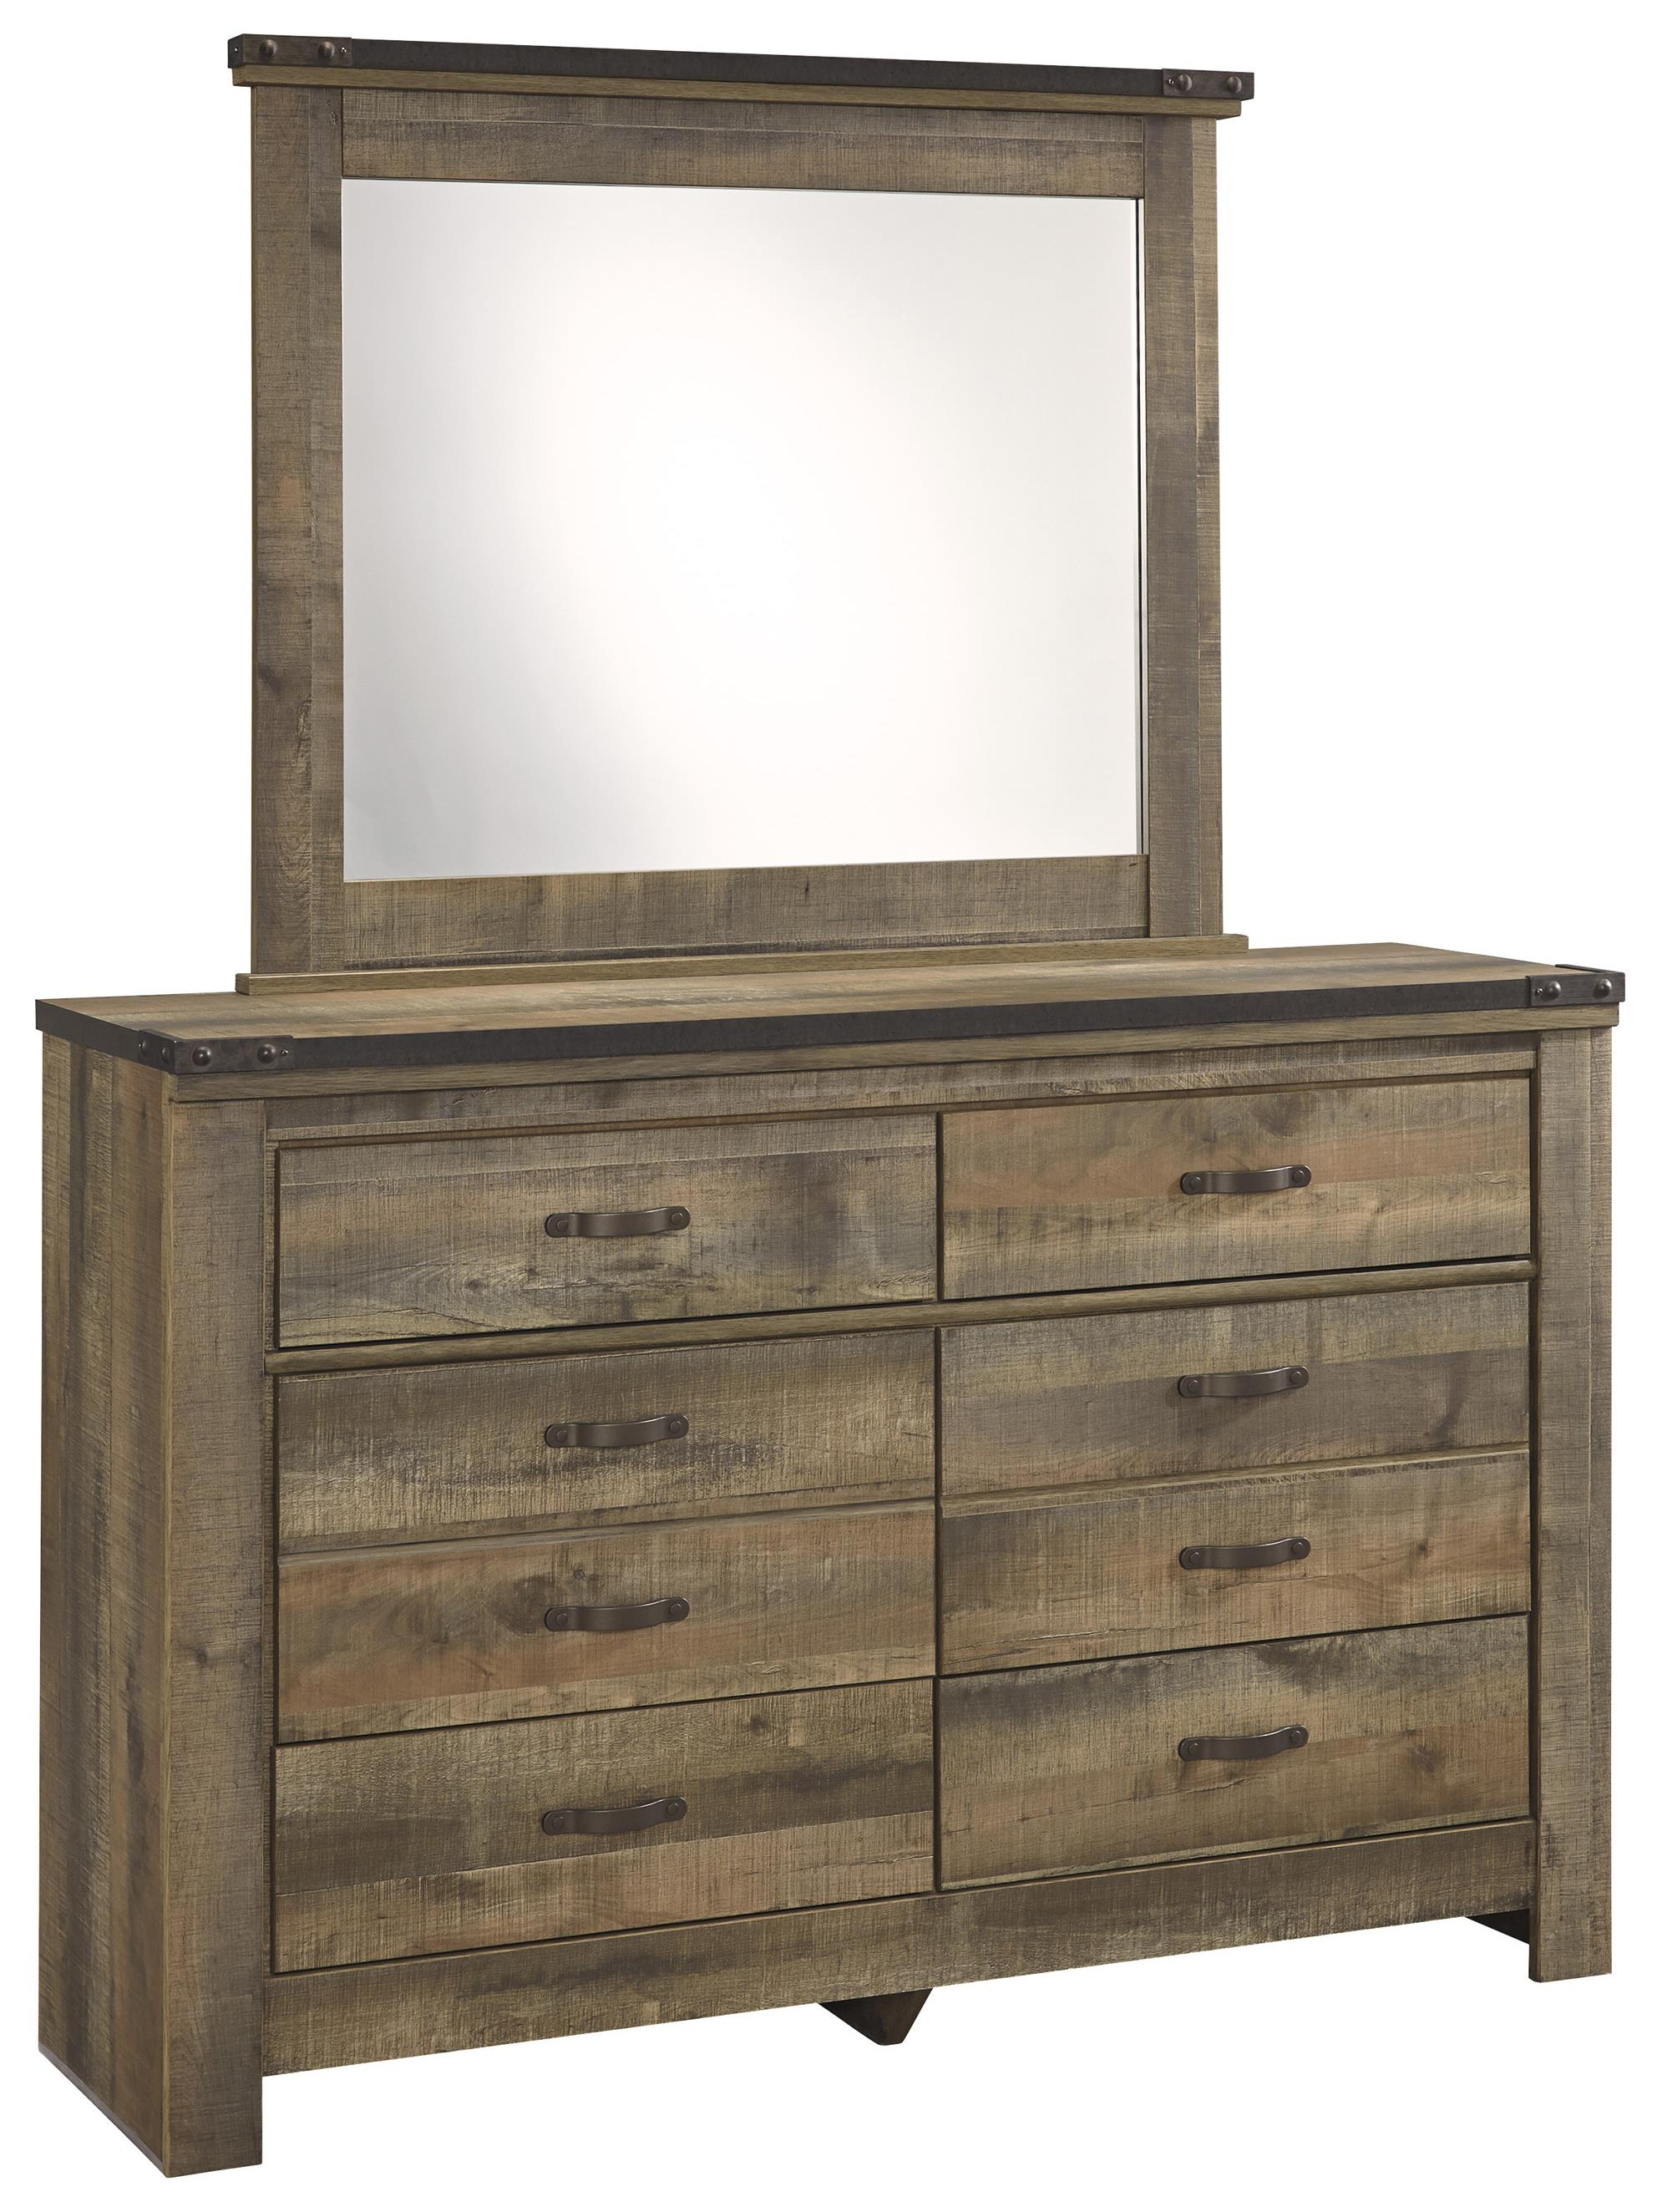 Signature design by ashley trinell rustic look youth for Bedroom furniture 37027